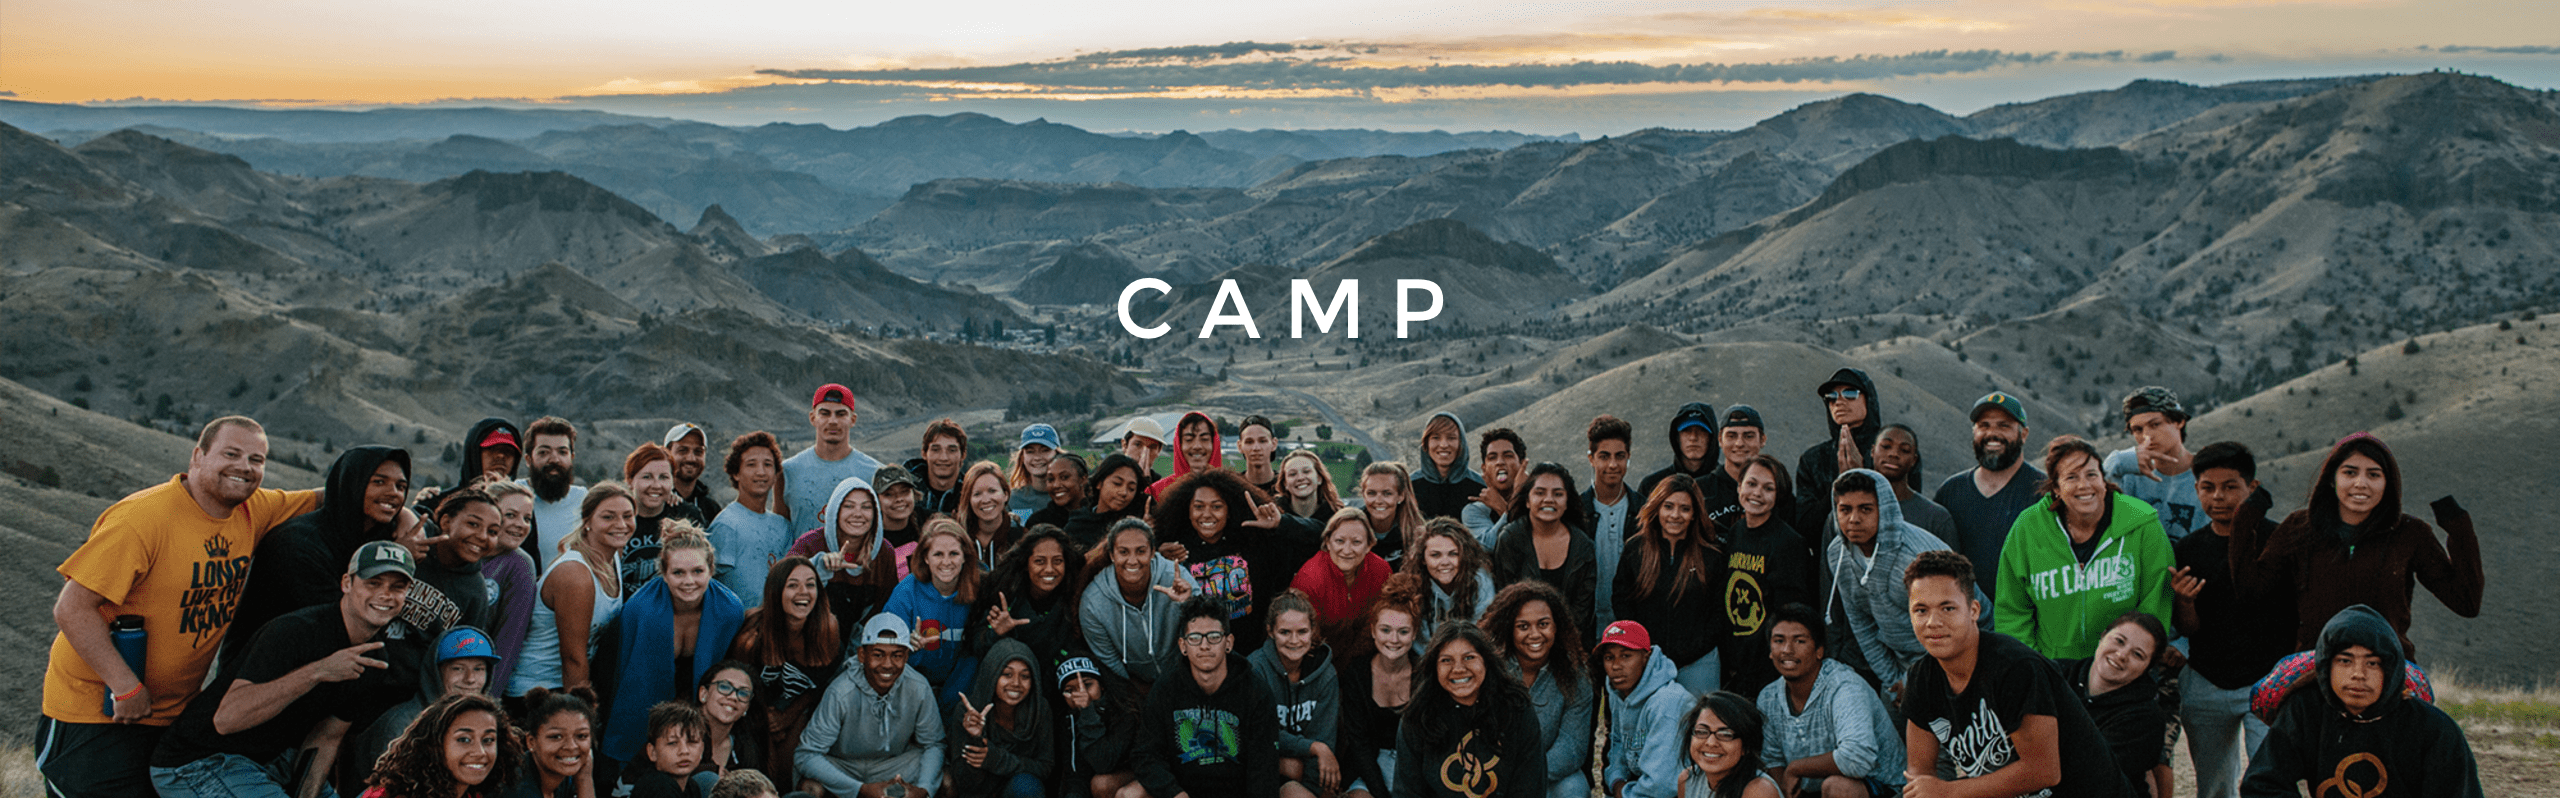 Send at-risk youth to inspiring camp